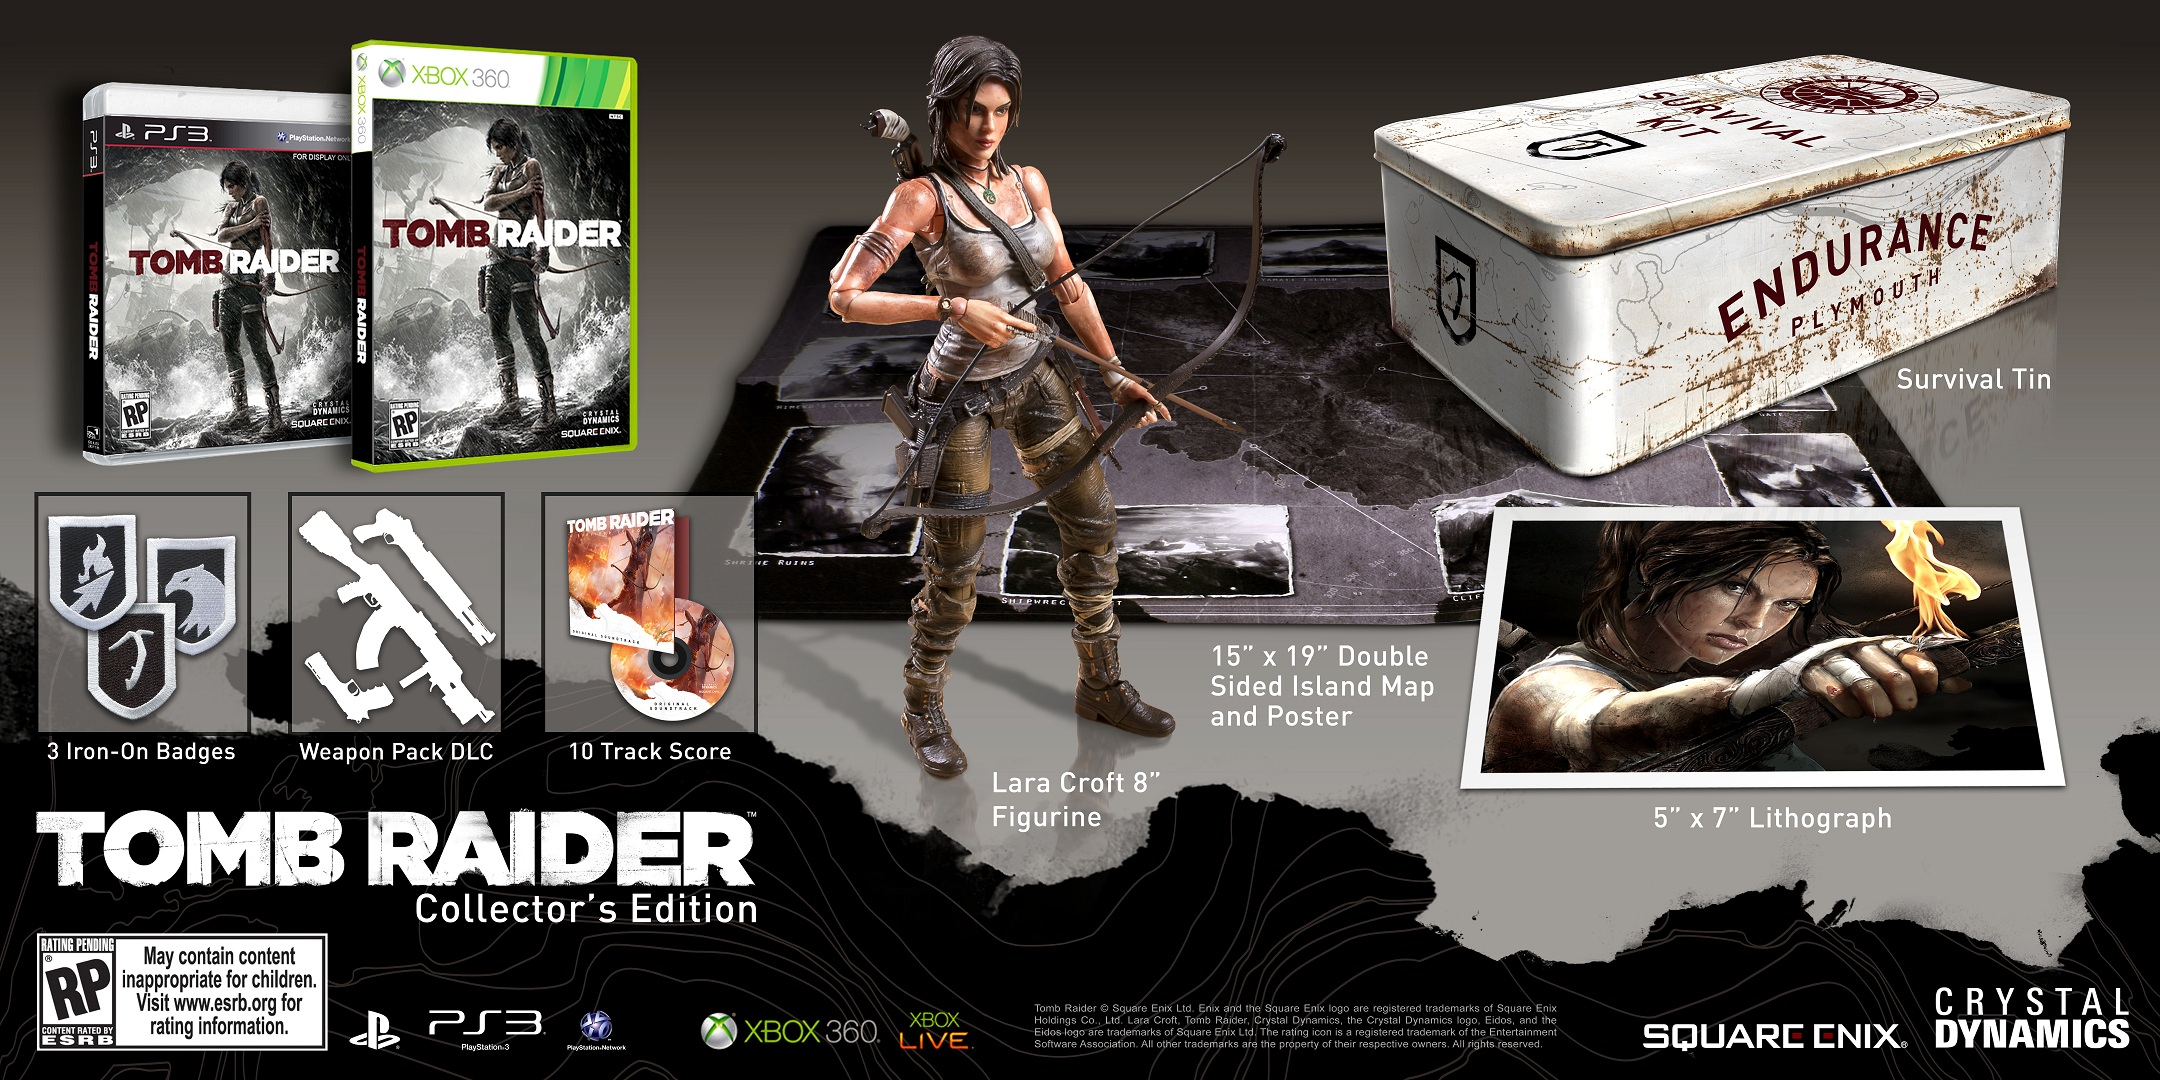 file_4092_tombraider_collectorsedition